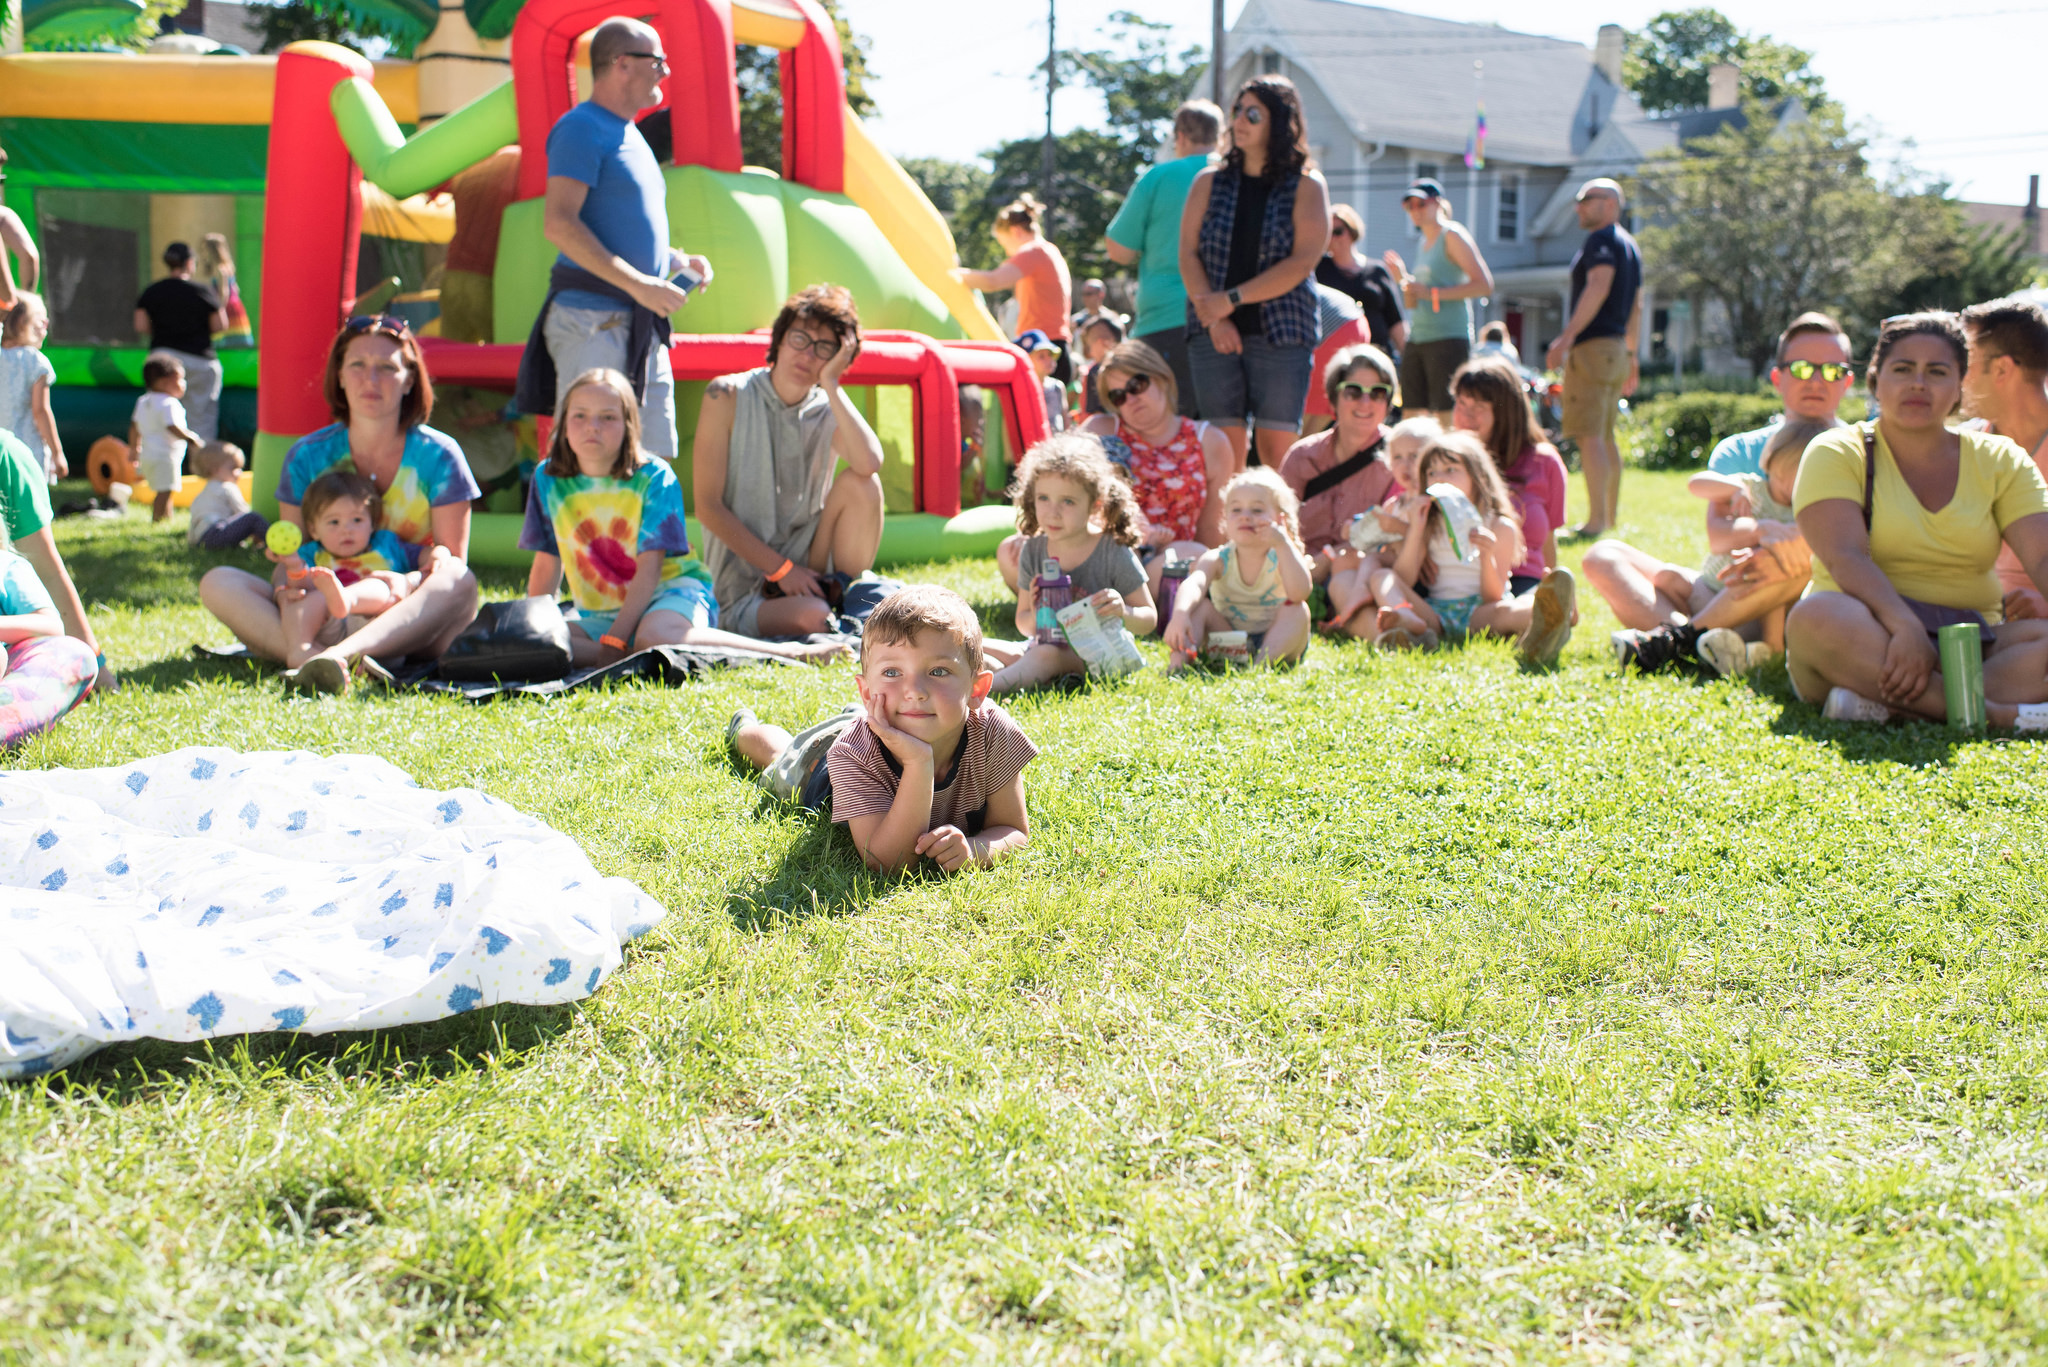 A group of families sitting on grass in front of a bouncehouse at Littles